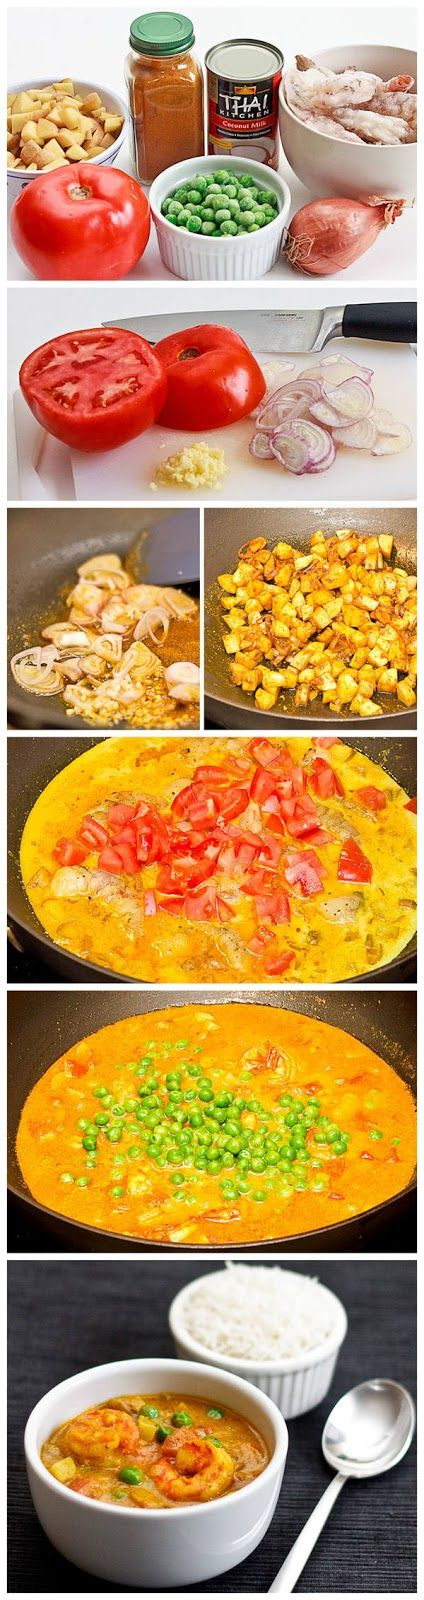 5star. Triple recipe and add 3 cans light coconut milk 1 cup milk 3 cups broth 1additional TB curry 1 1/2 tsp cayenne